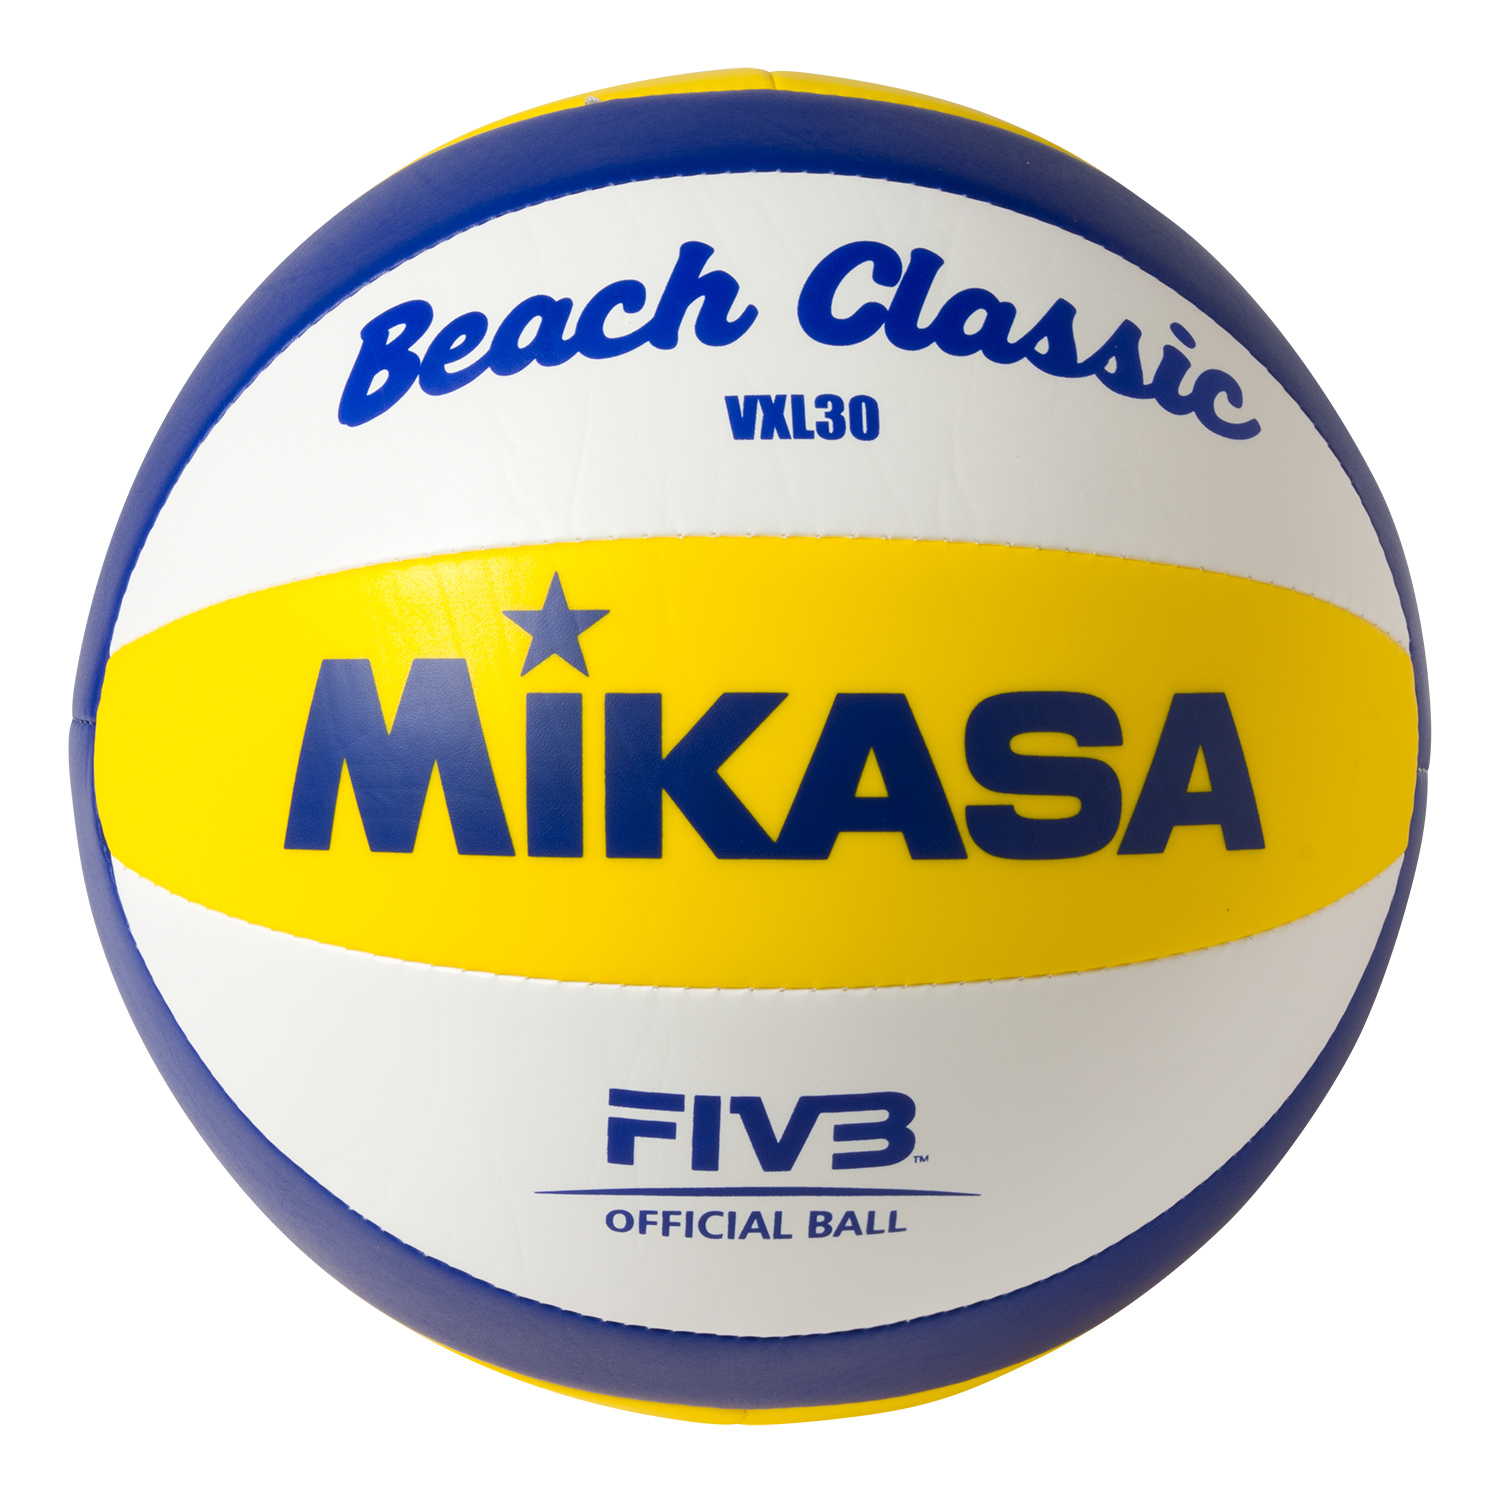 Mikasa Official Olympic Beach Classic Volleyball